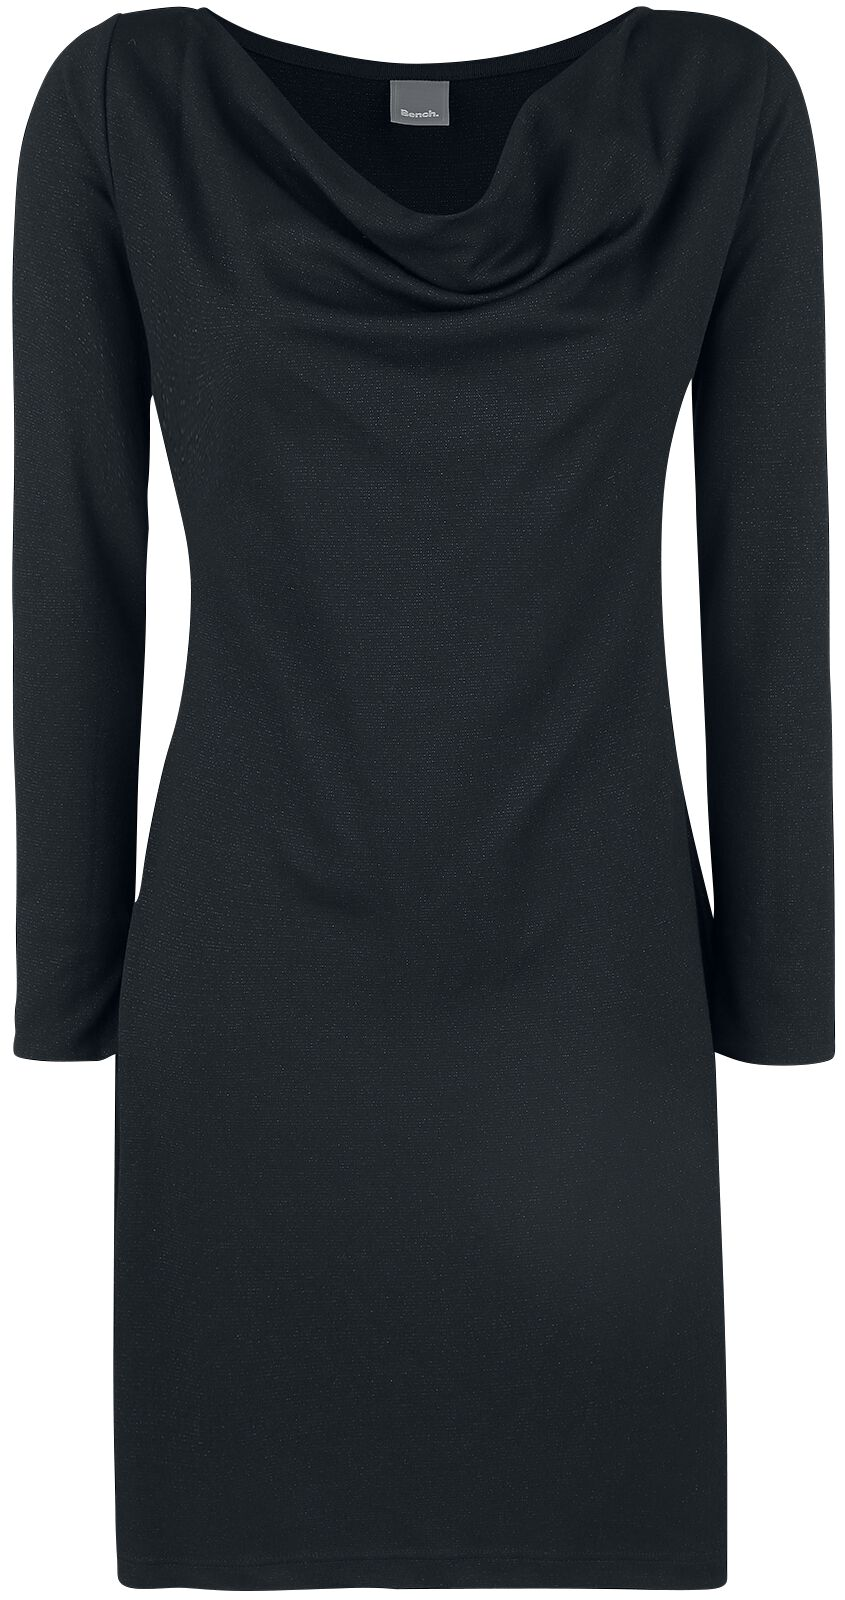 Bench Interlock Lurex Dress Kleid schwarz